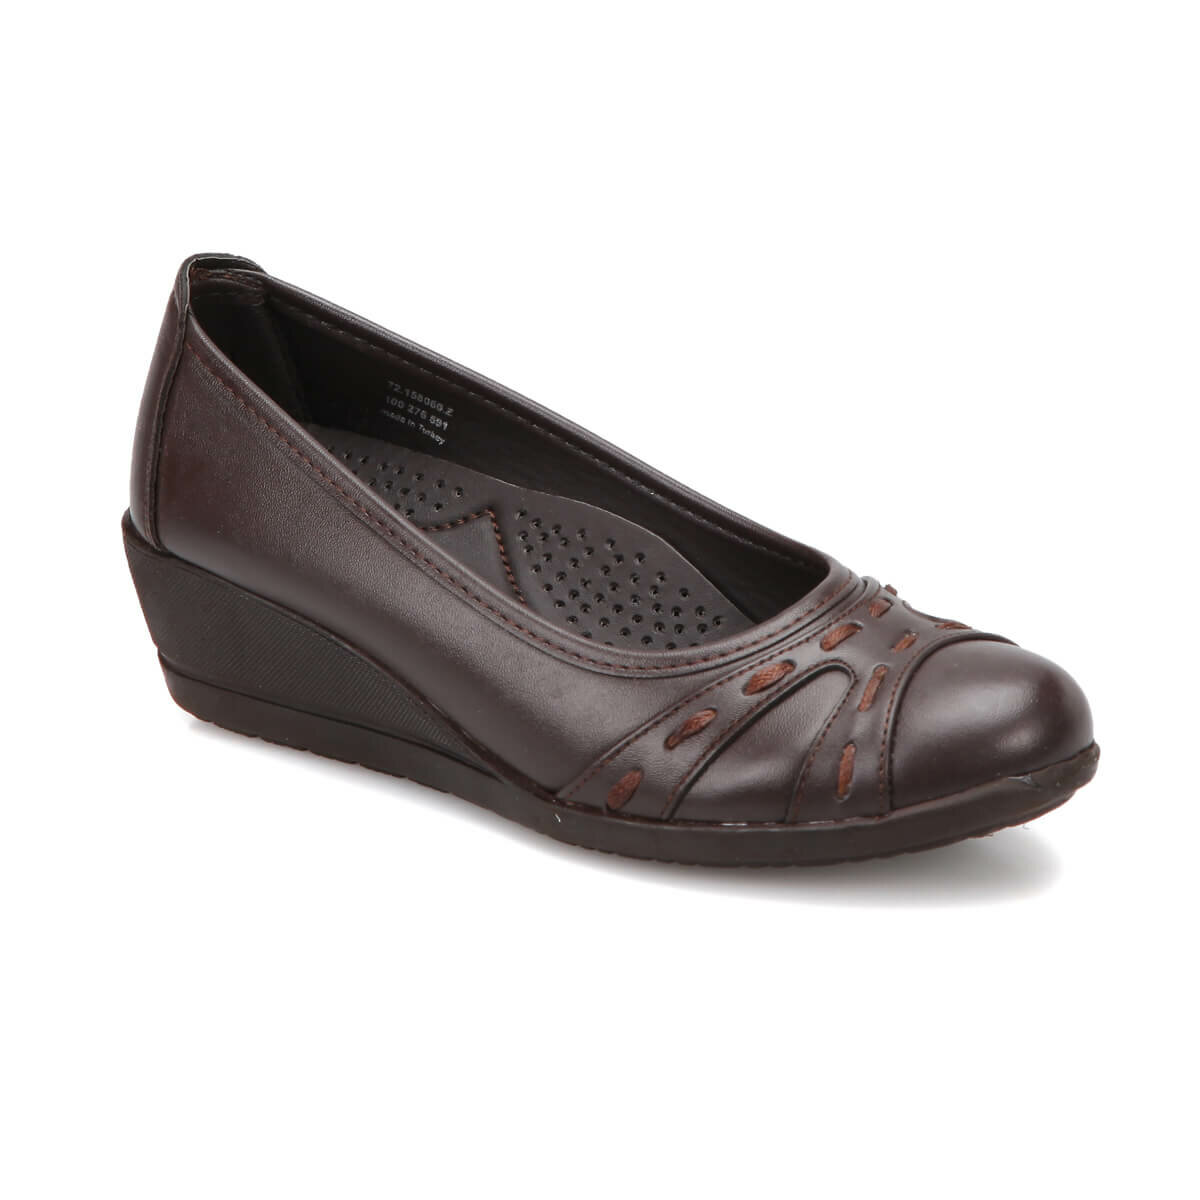 FLO 72. 158060.Z Brown Women 'S Comfort Shoes Polaris